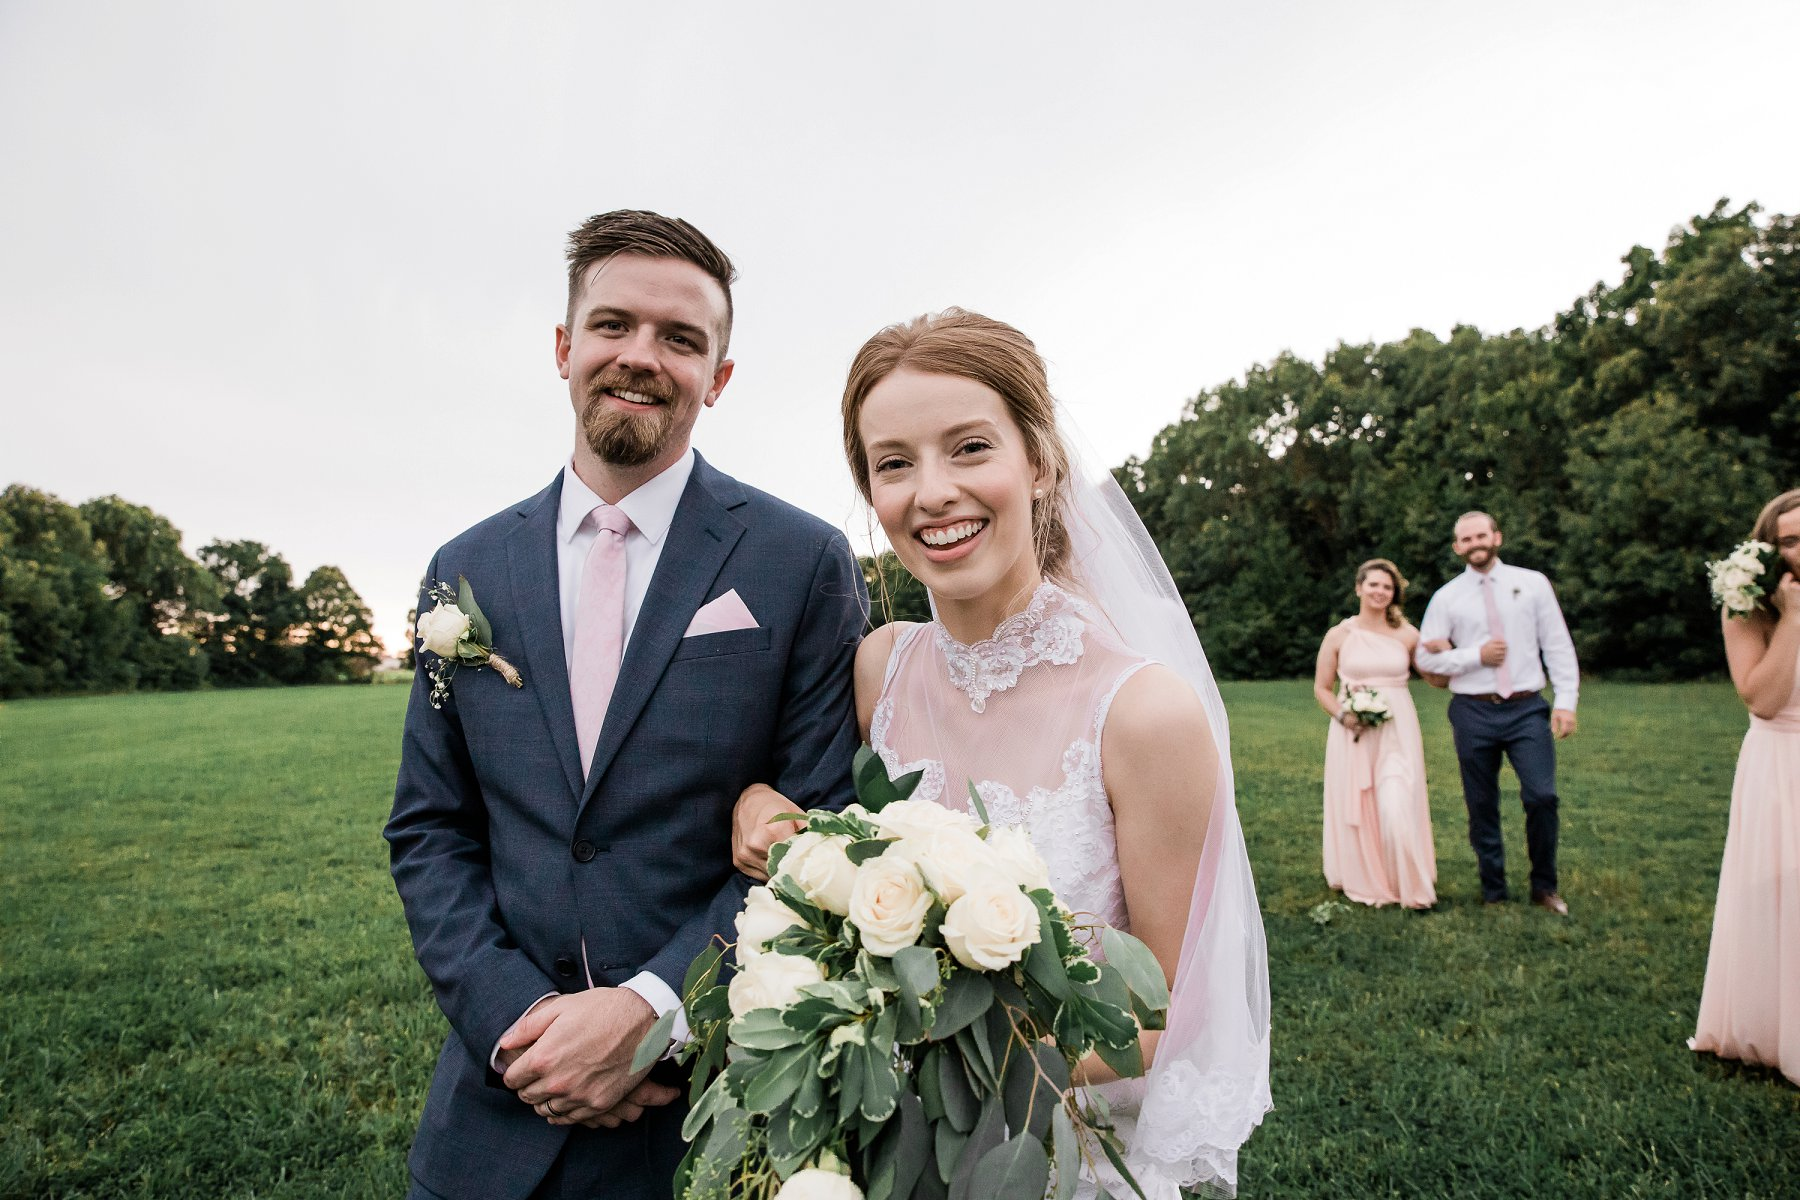 Outdoor Summer Wedding Photography in Kansas City by Merry Ohler, wedding photographer kansas city - 35